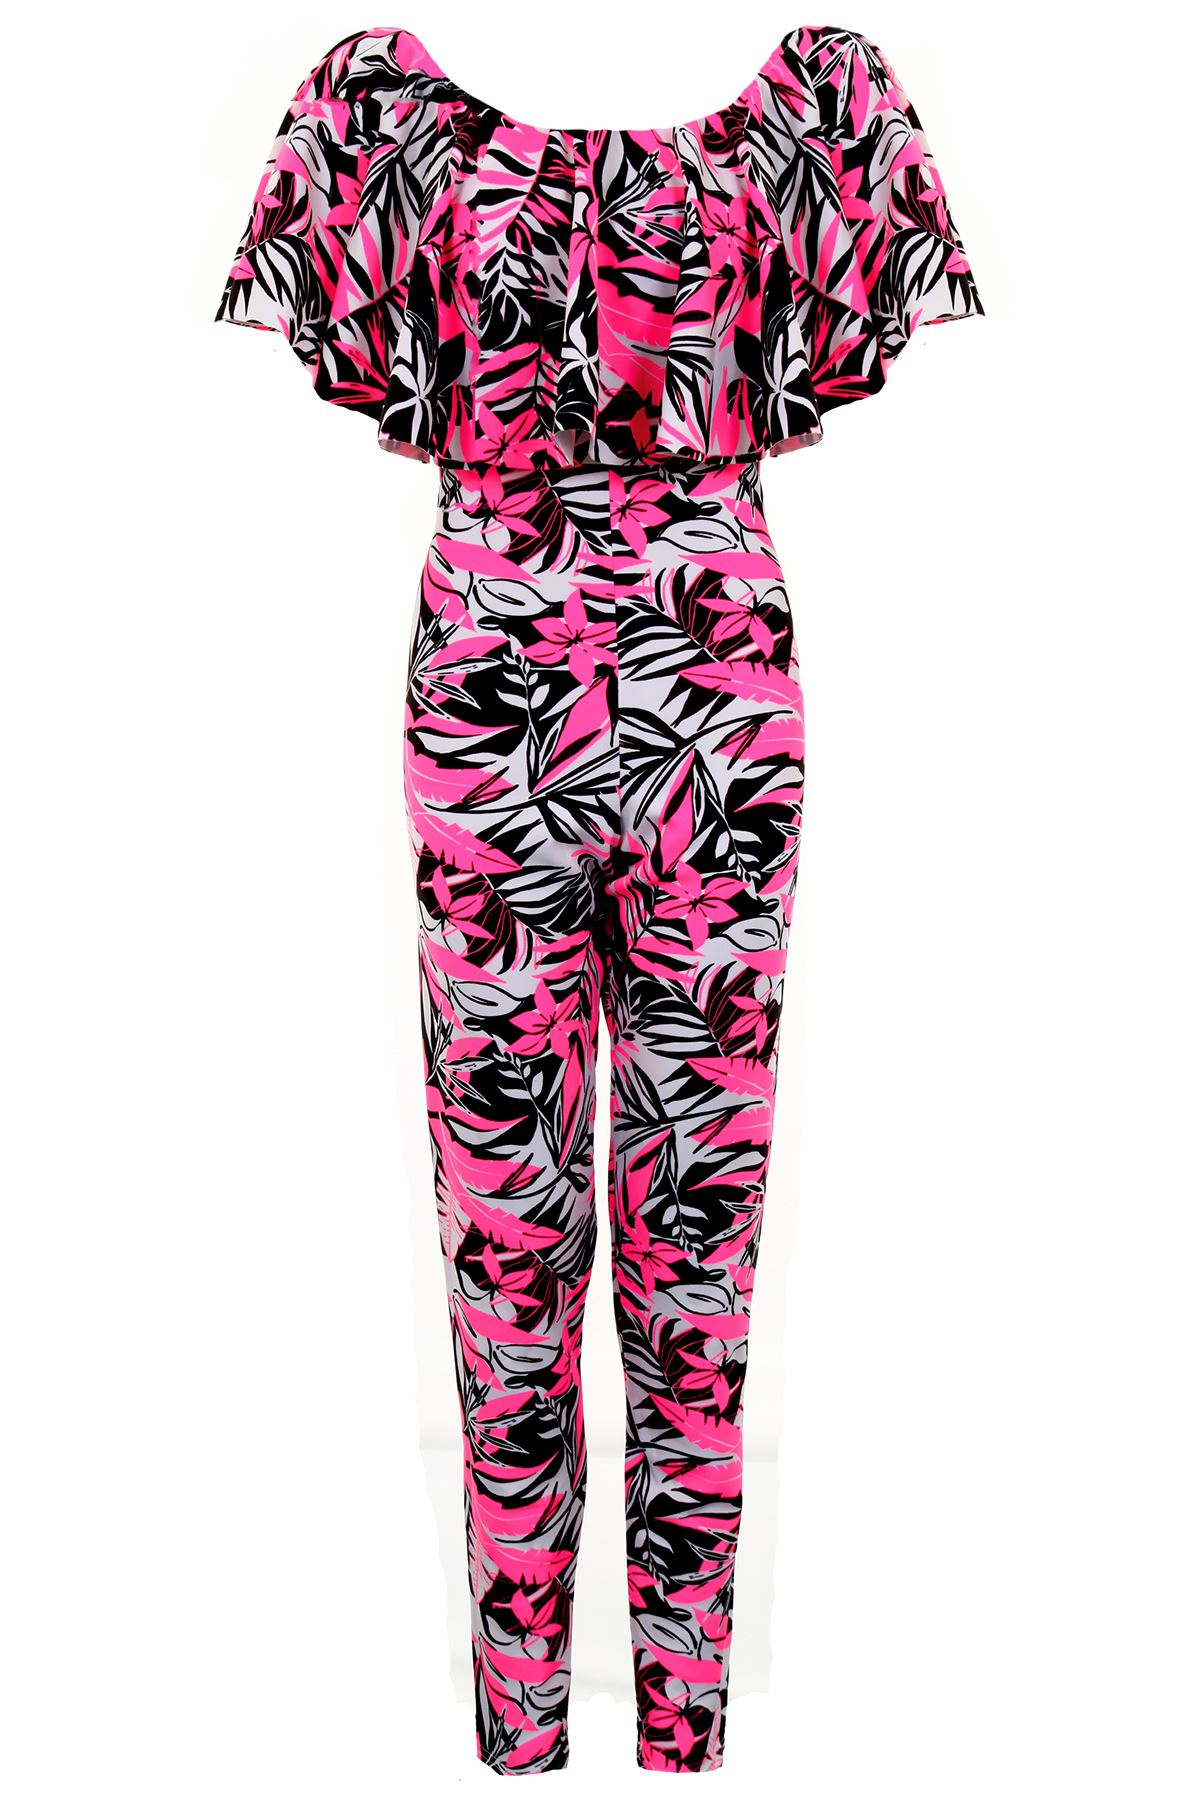 Women/'s Celeb Inspired Off Shoulder Frill Neon Floral Tropical Ladies Jumpsuit